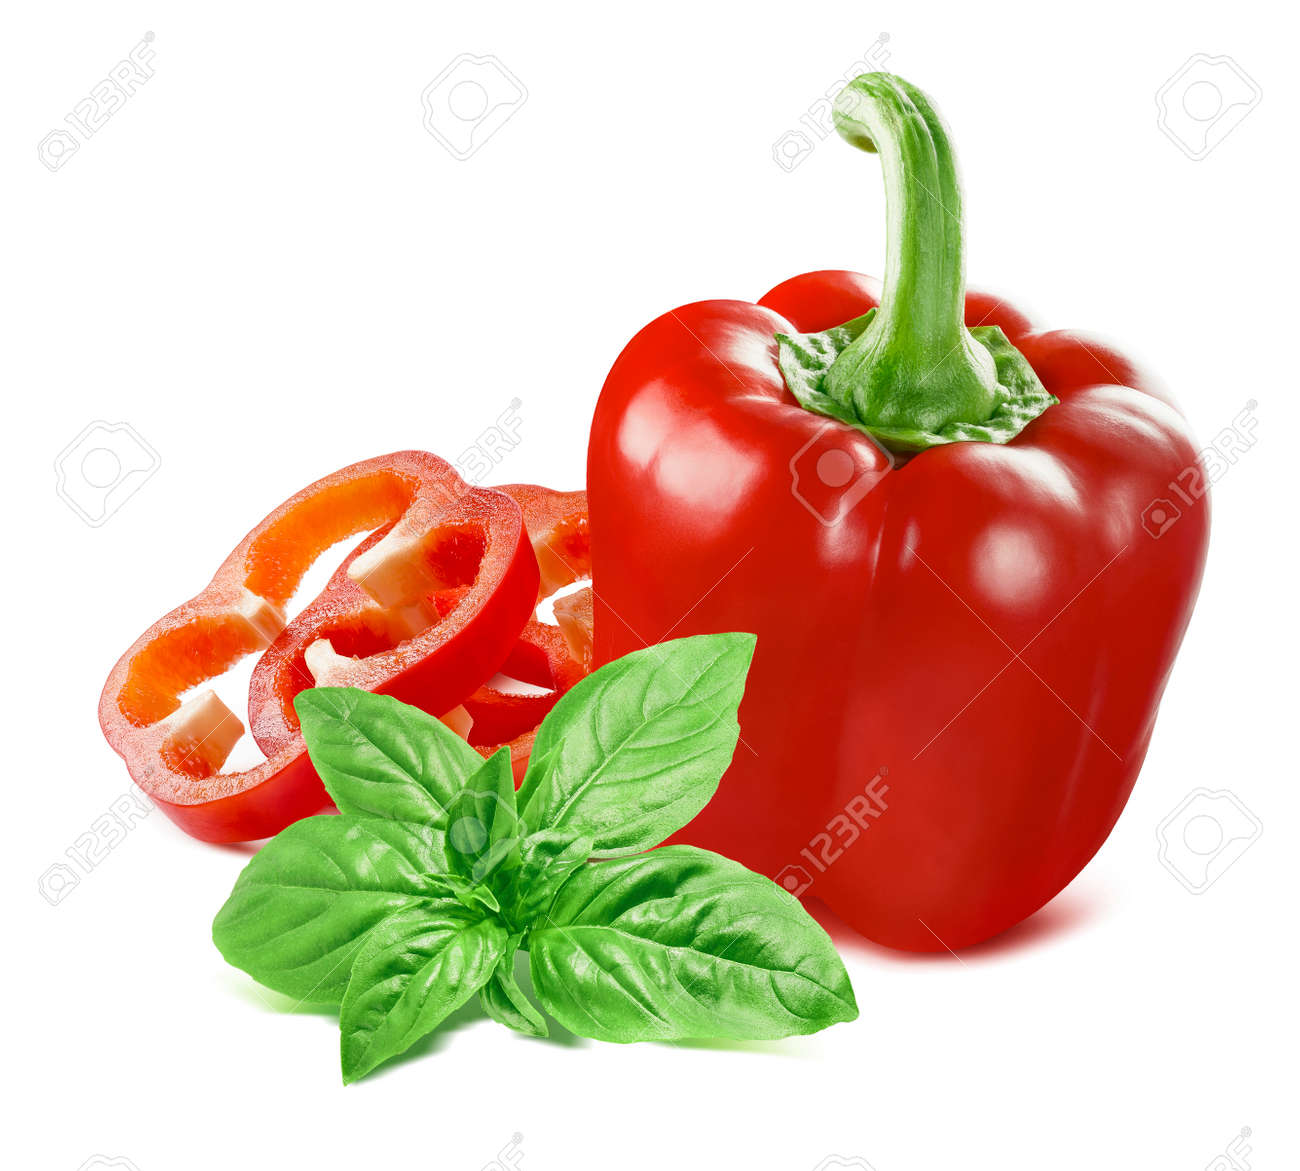 Sweet red pepper and green basil isolated on white - 168223480